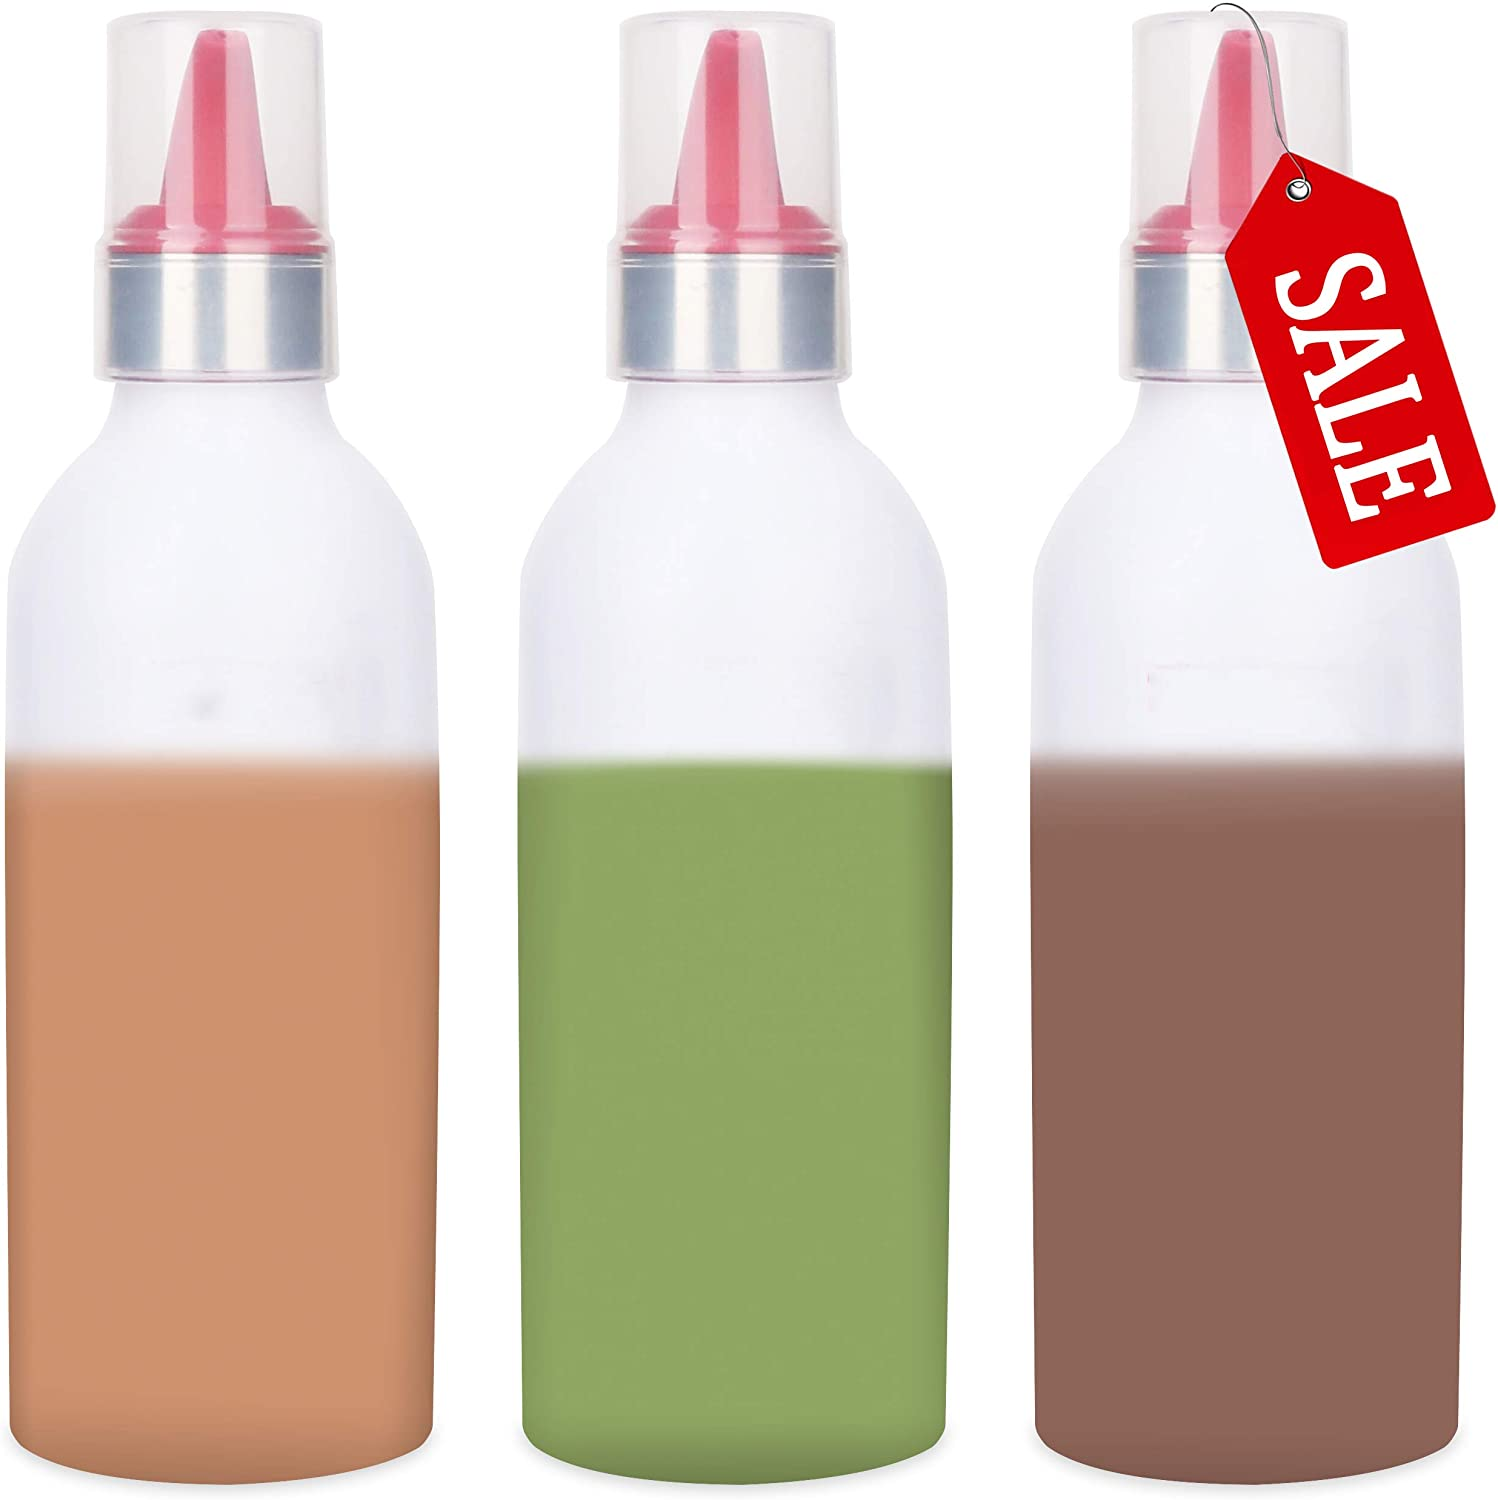 3 PCS Condiment Squeeze Bottle Sauce Squeeze Squirt Bottle for Kitchen Plastic Syrup Container Food Dispenser for Oil Ketchup